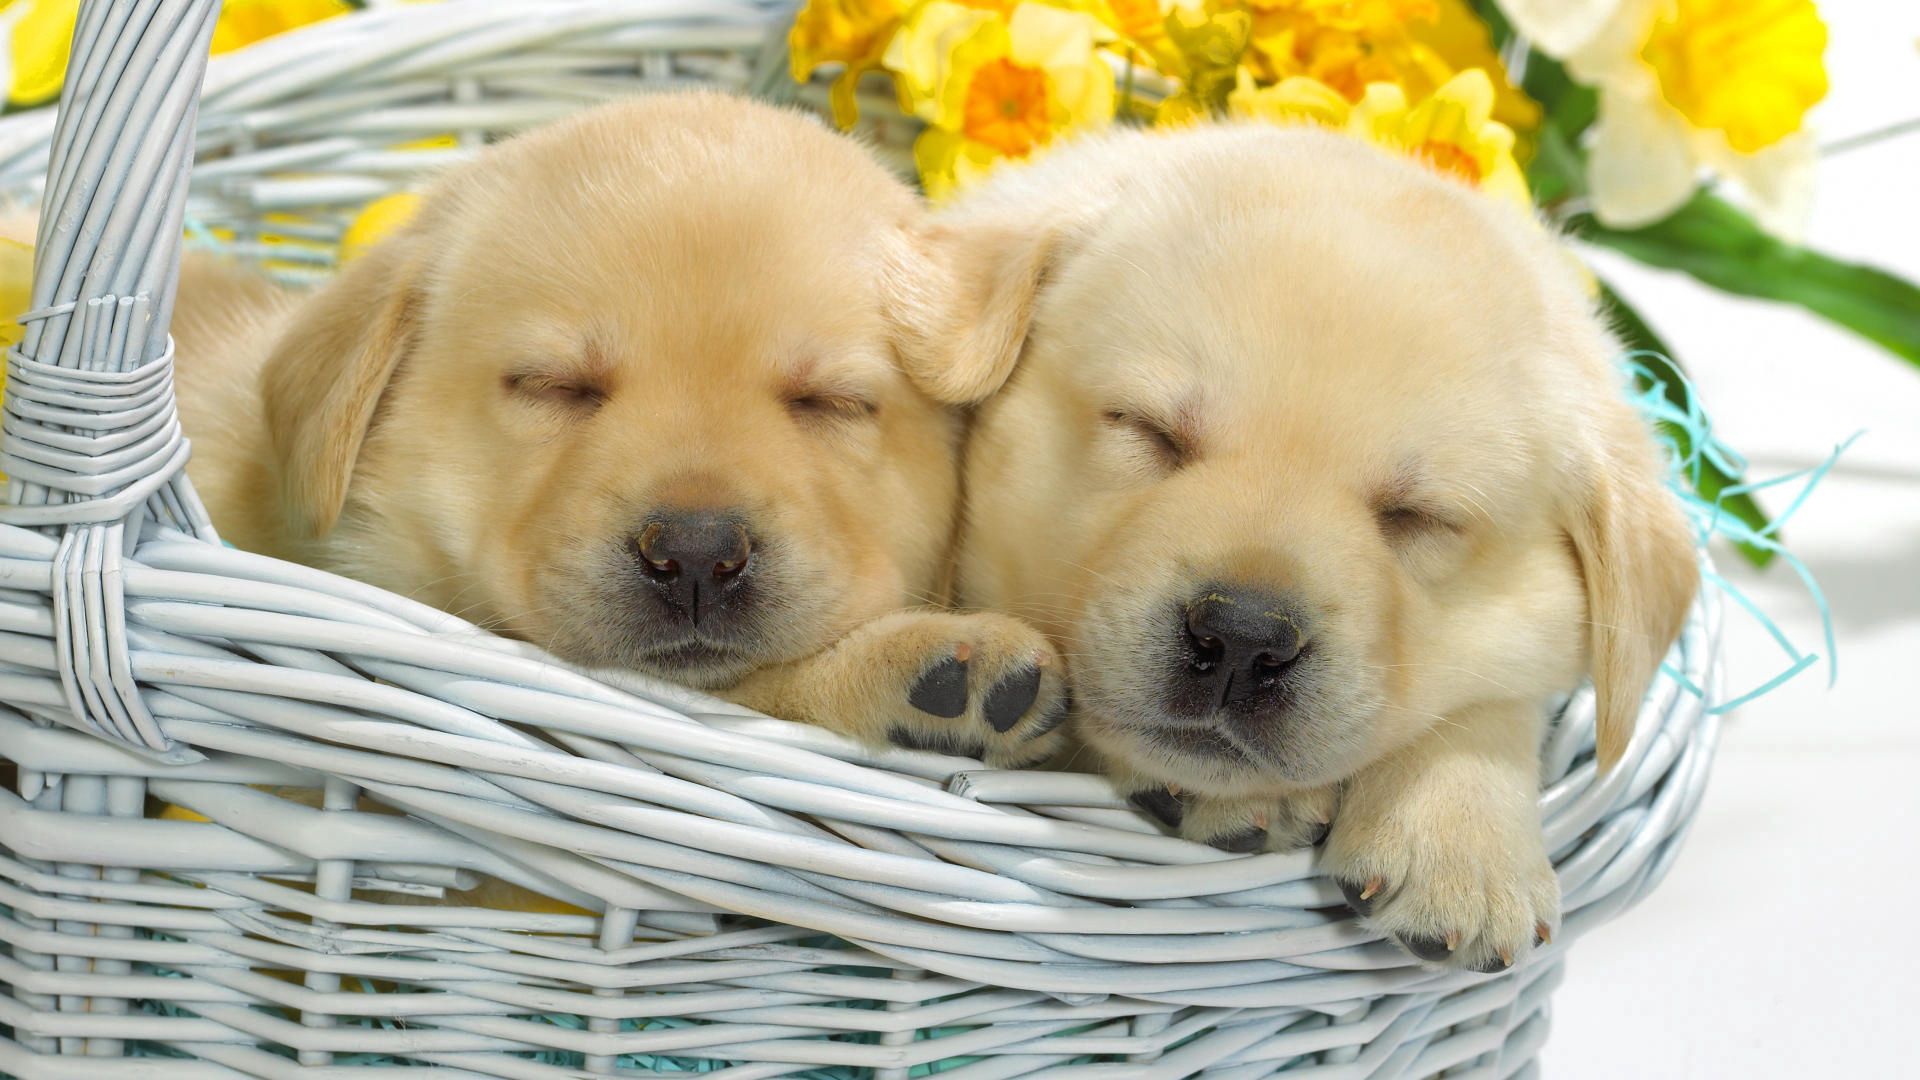 89737 download wallpaper Animals, Flowers, To Lie Down, Lie, Basket, Labradors, Puppies screensavers and pictures for free